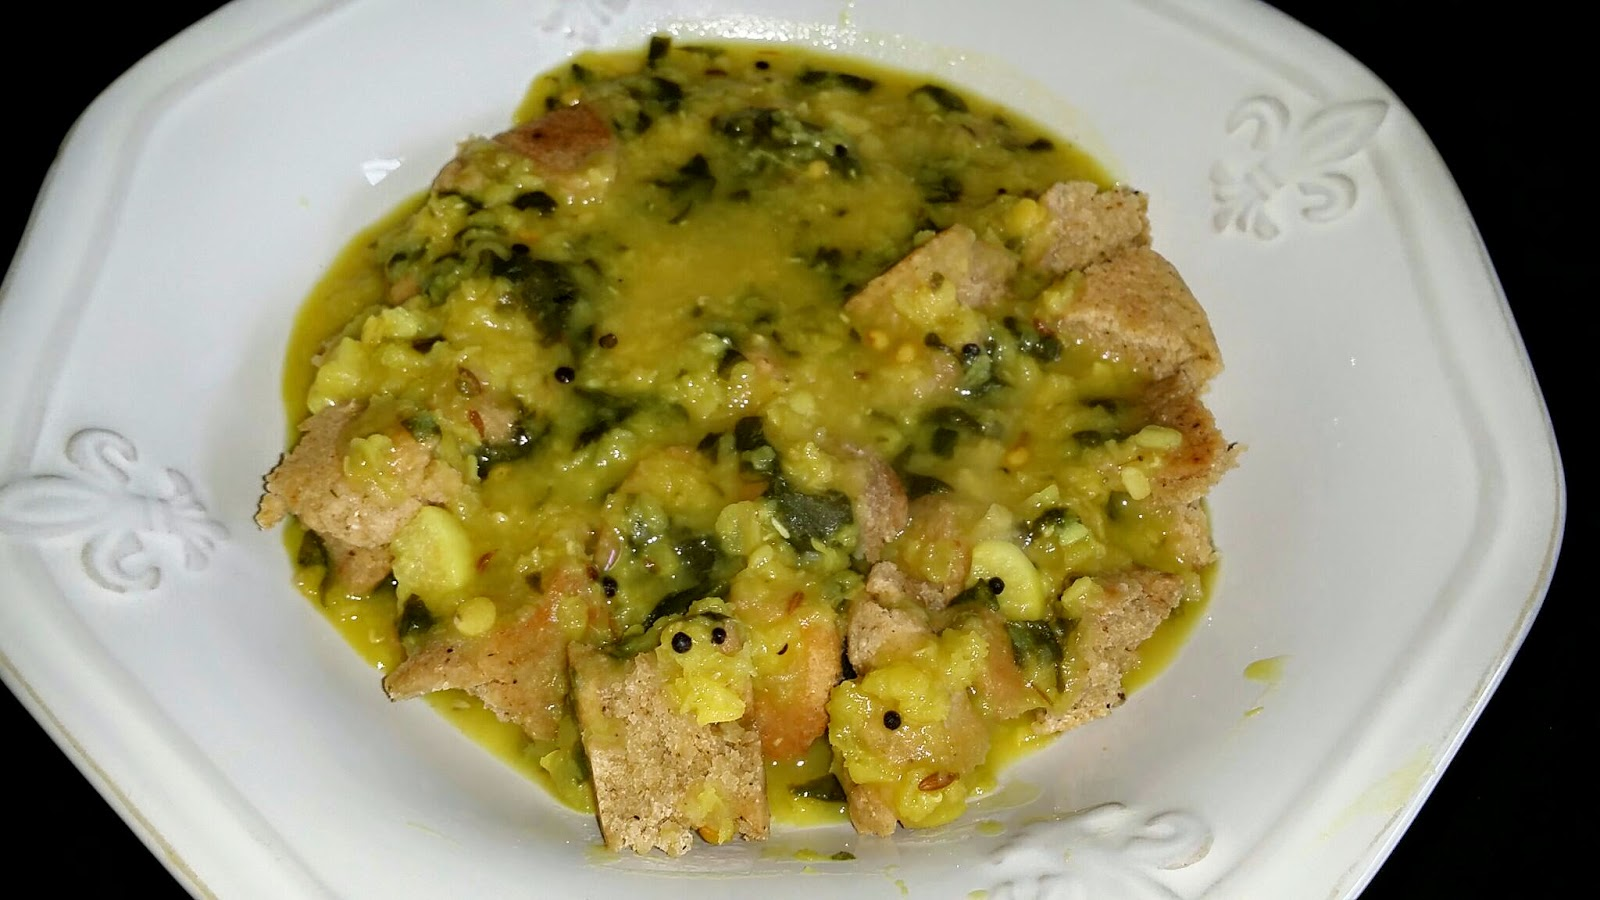 Nothingiscooking the cooking channel dal baatti rajastani dish dal baatti one of the nostalgic food for my husband reminding the first day of his hostel foodhe had no idea how to eat that when a hard roundule of forumfinder Image collections